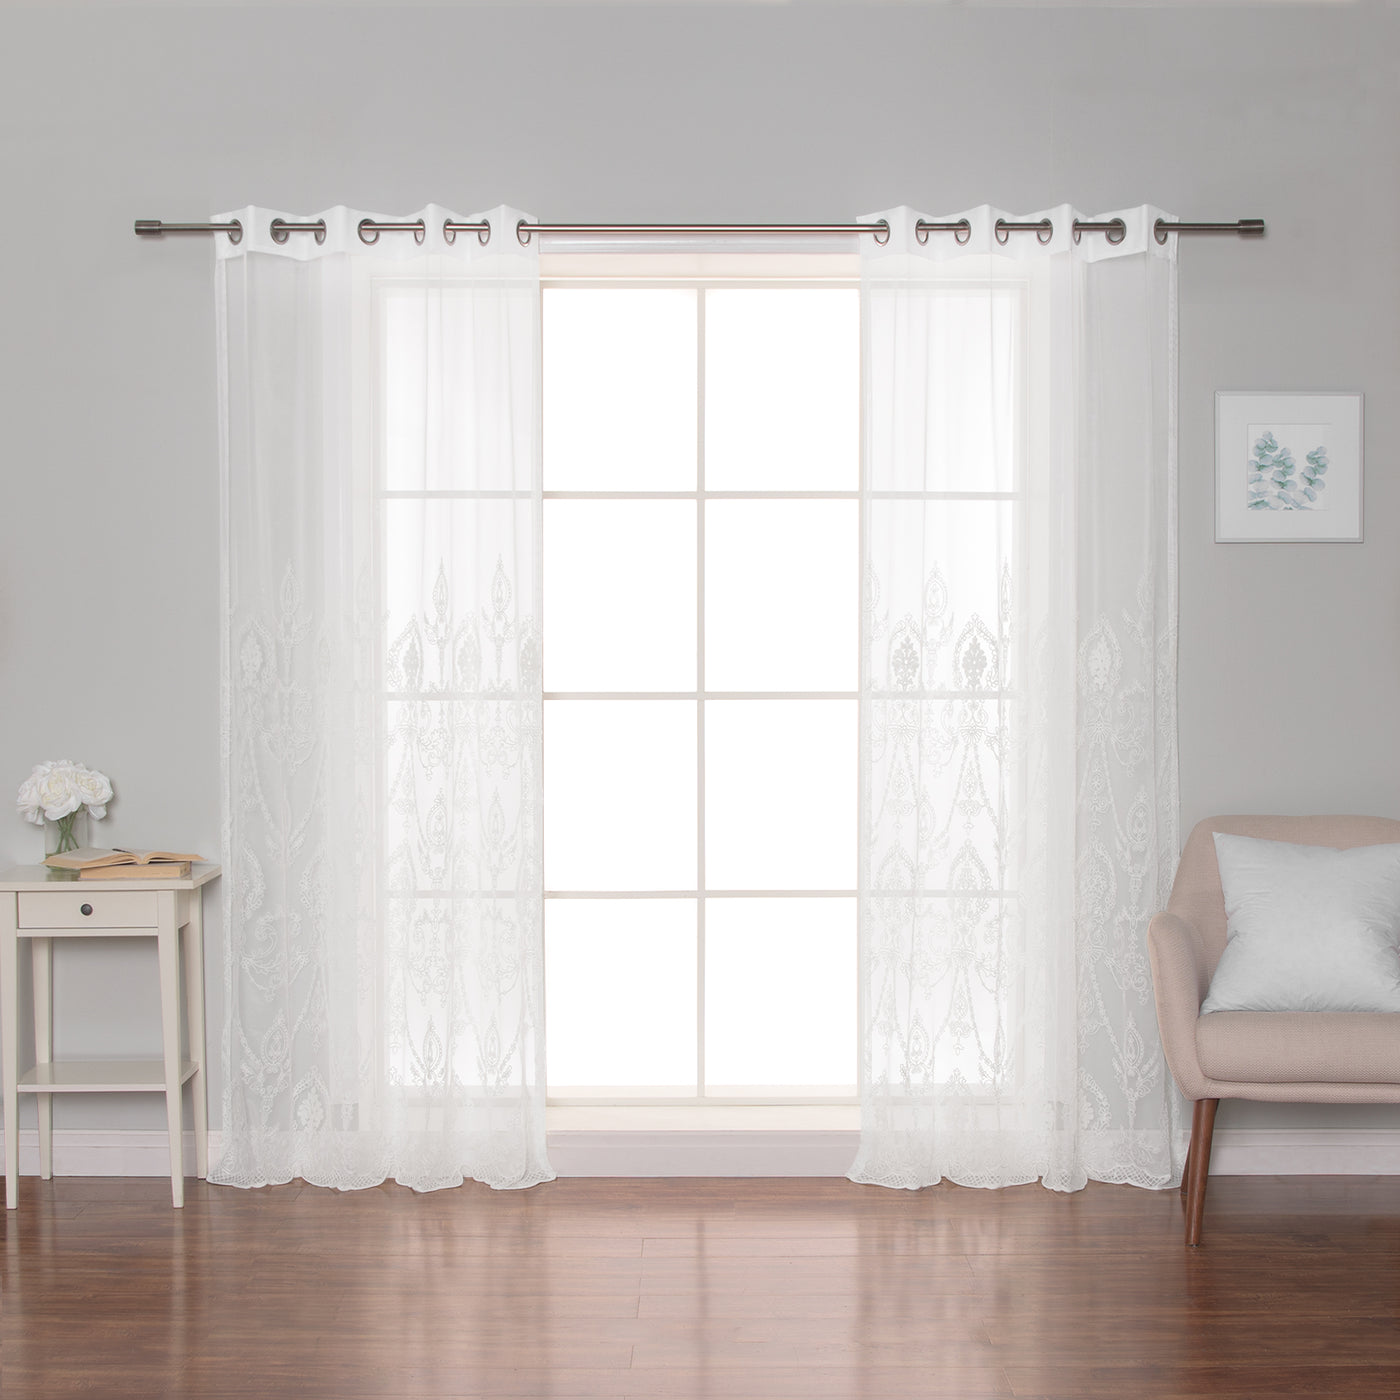 Sheer Trellis Grommet Curtains